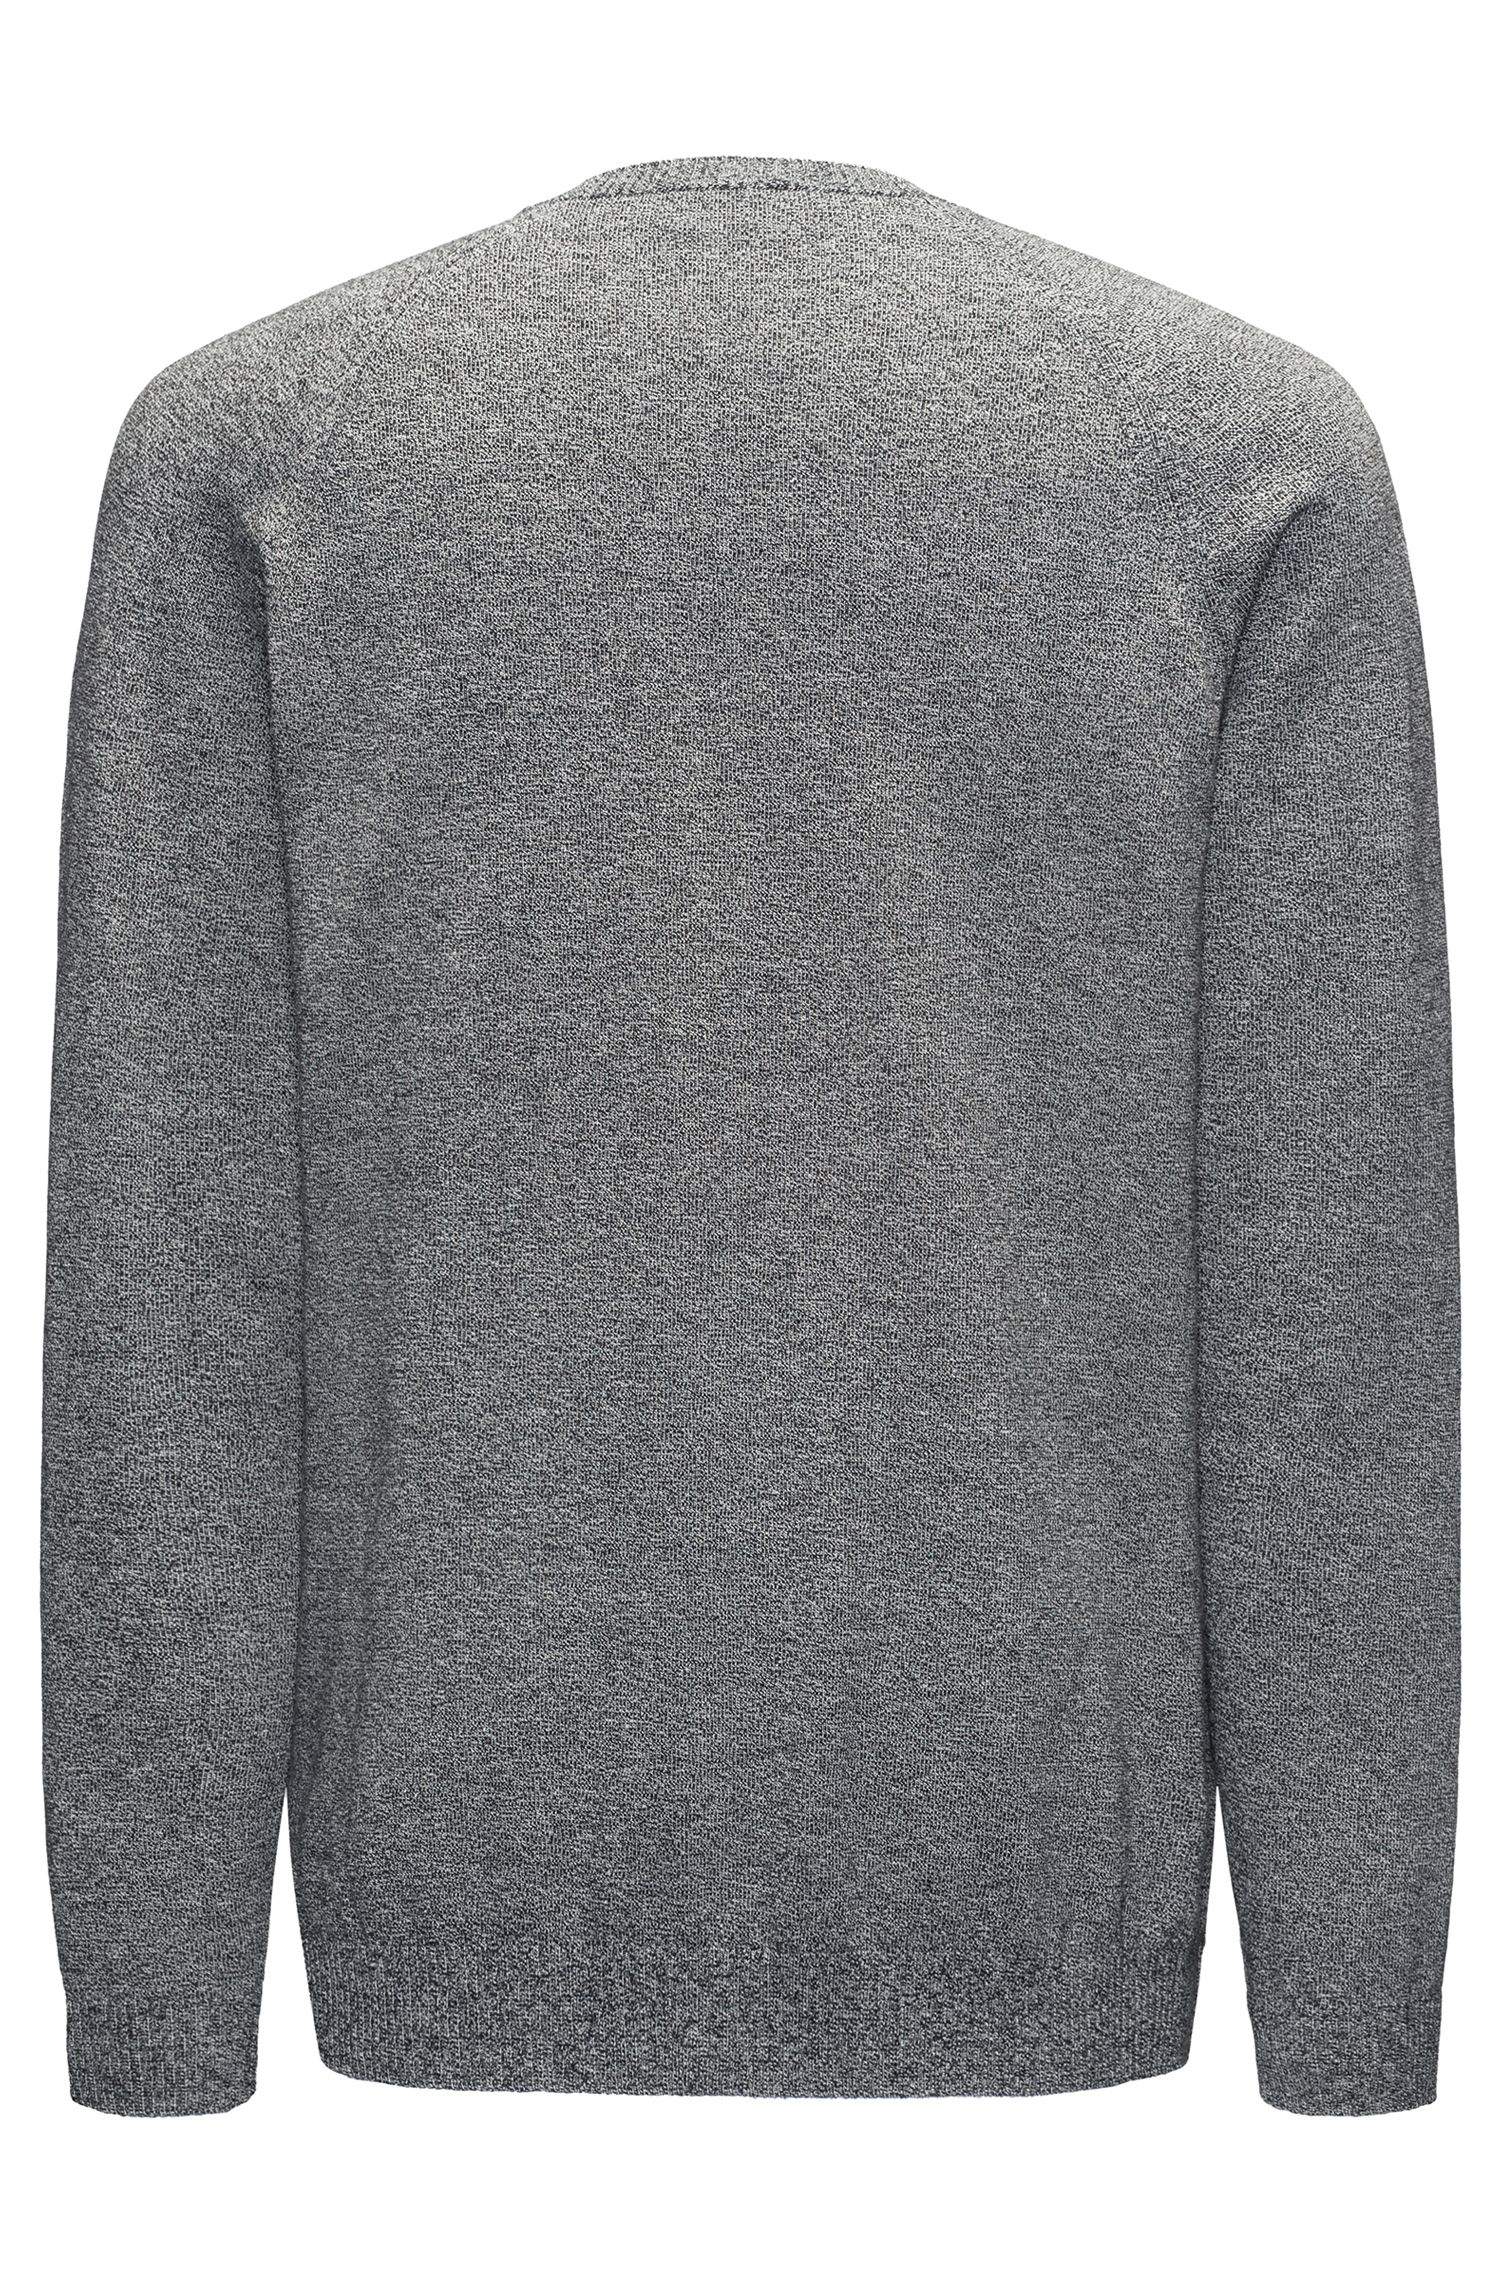 Mouliné sweater in pure cotton